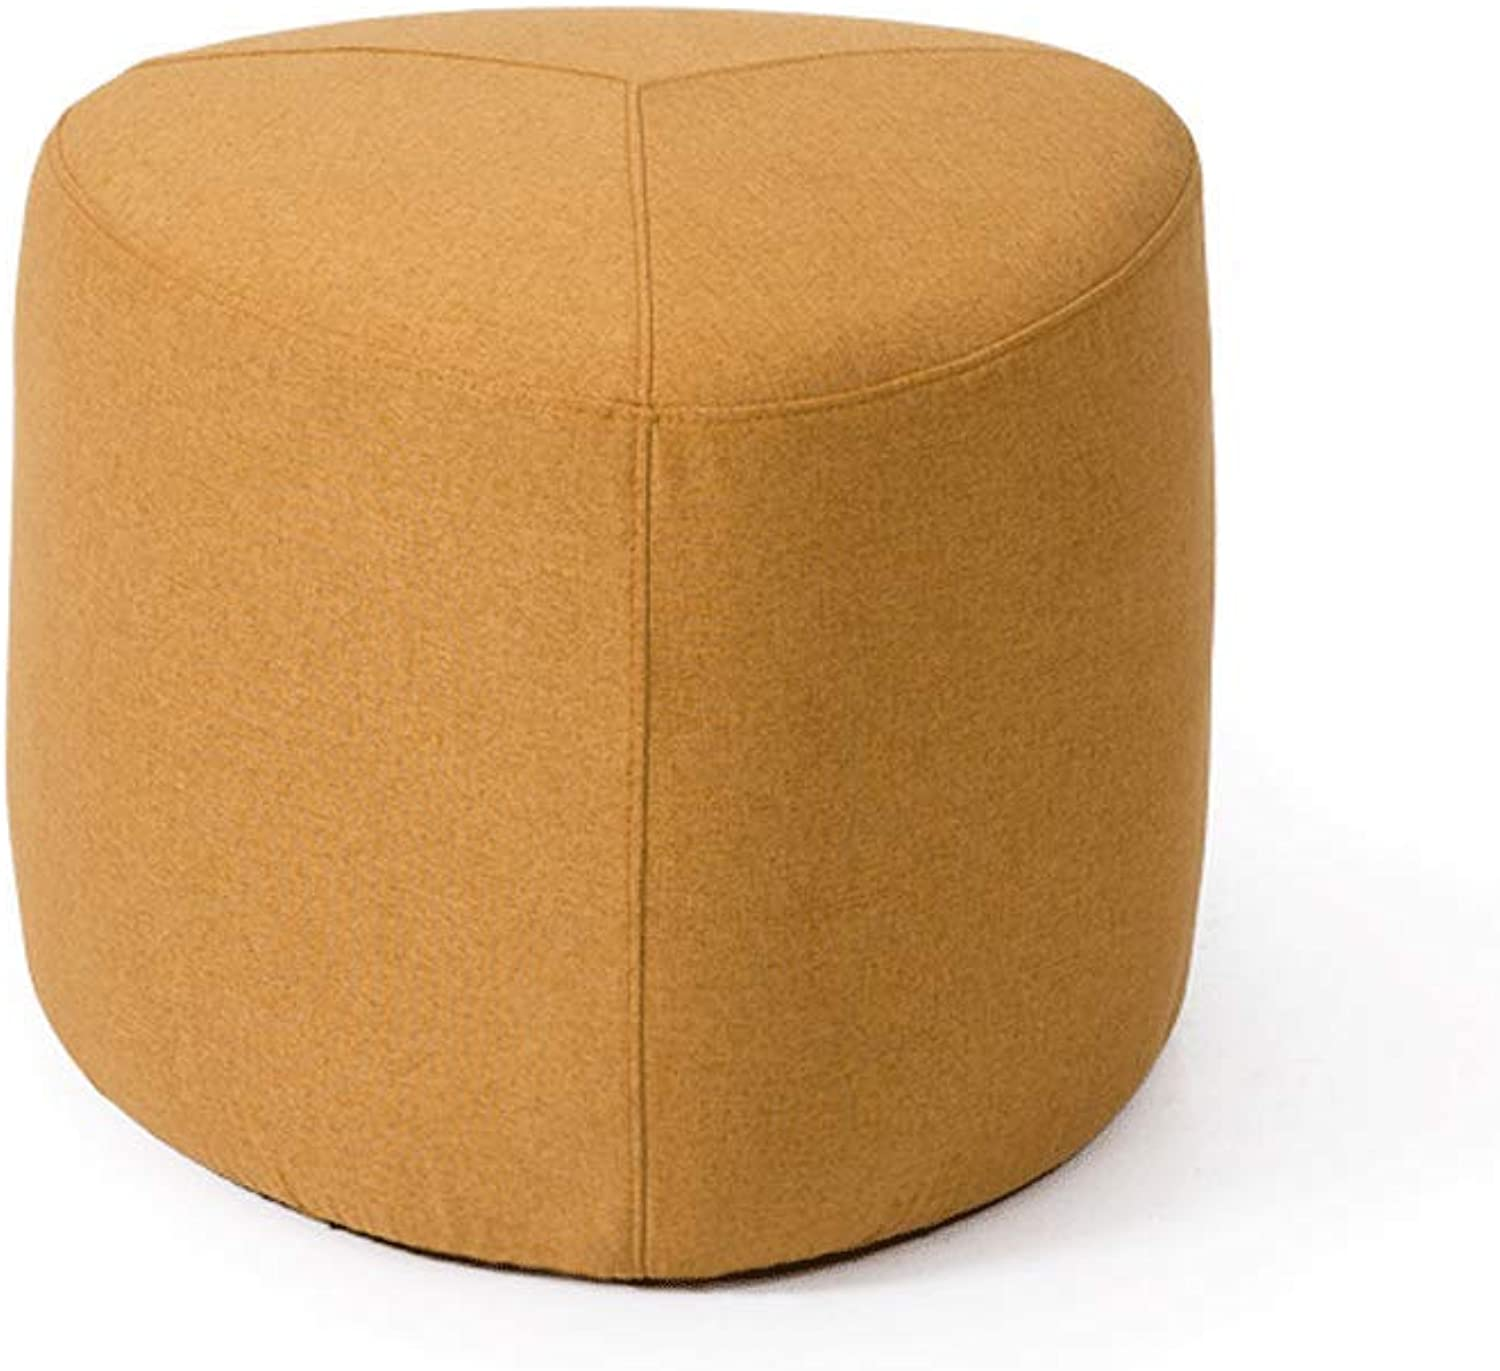 Low Stool Creative Lazy Sofa Bench Coffee Table Stool Fabric Modern Footstool Household Stool A. (color   C)